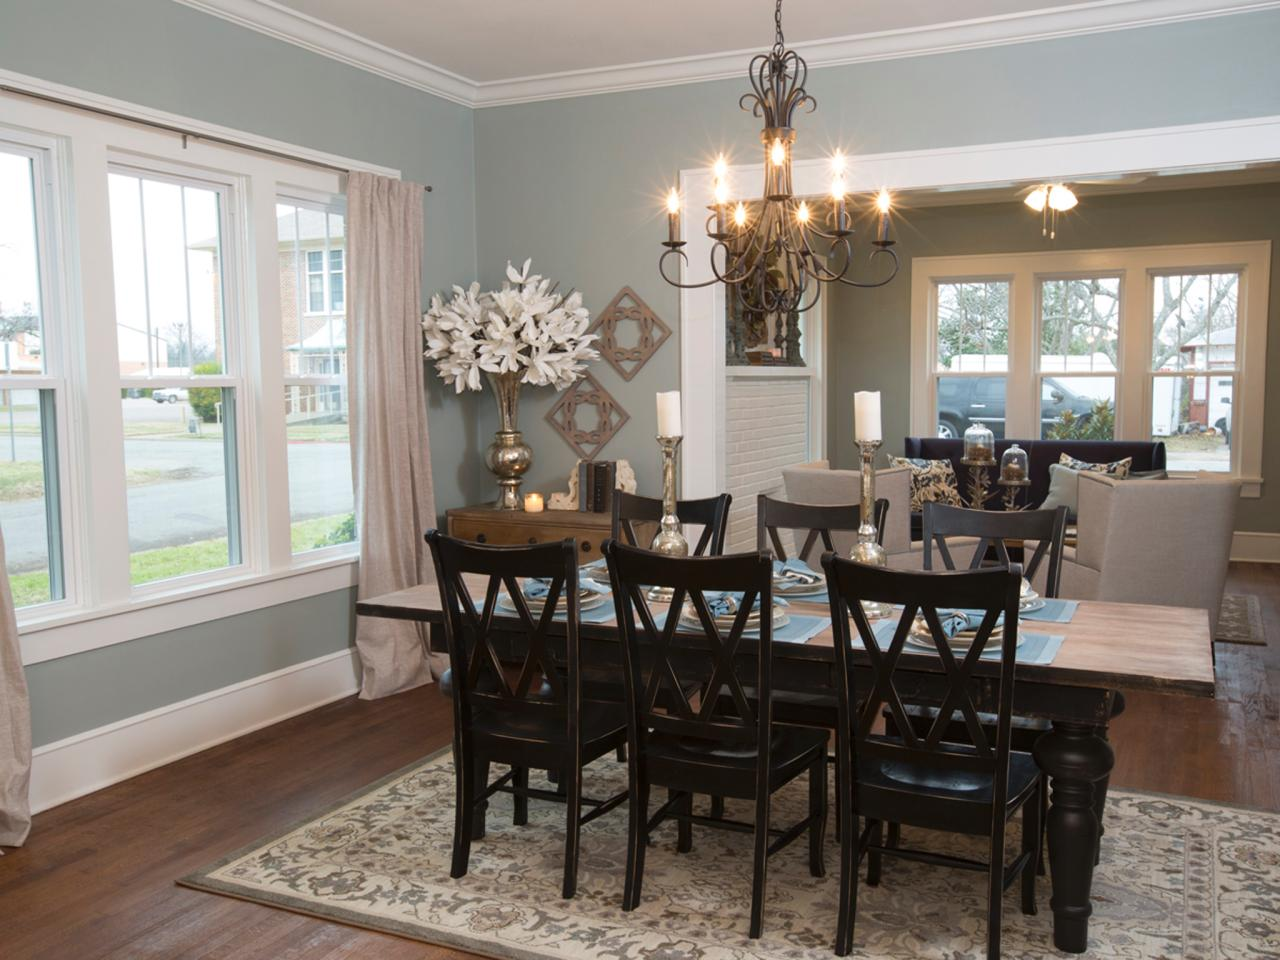 Blue Dining Room With Country Dining Table And Chairs Hgtv